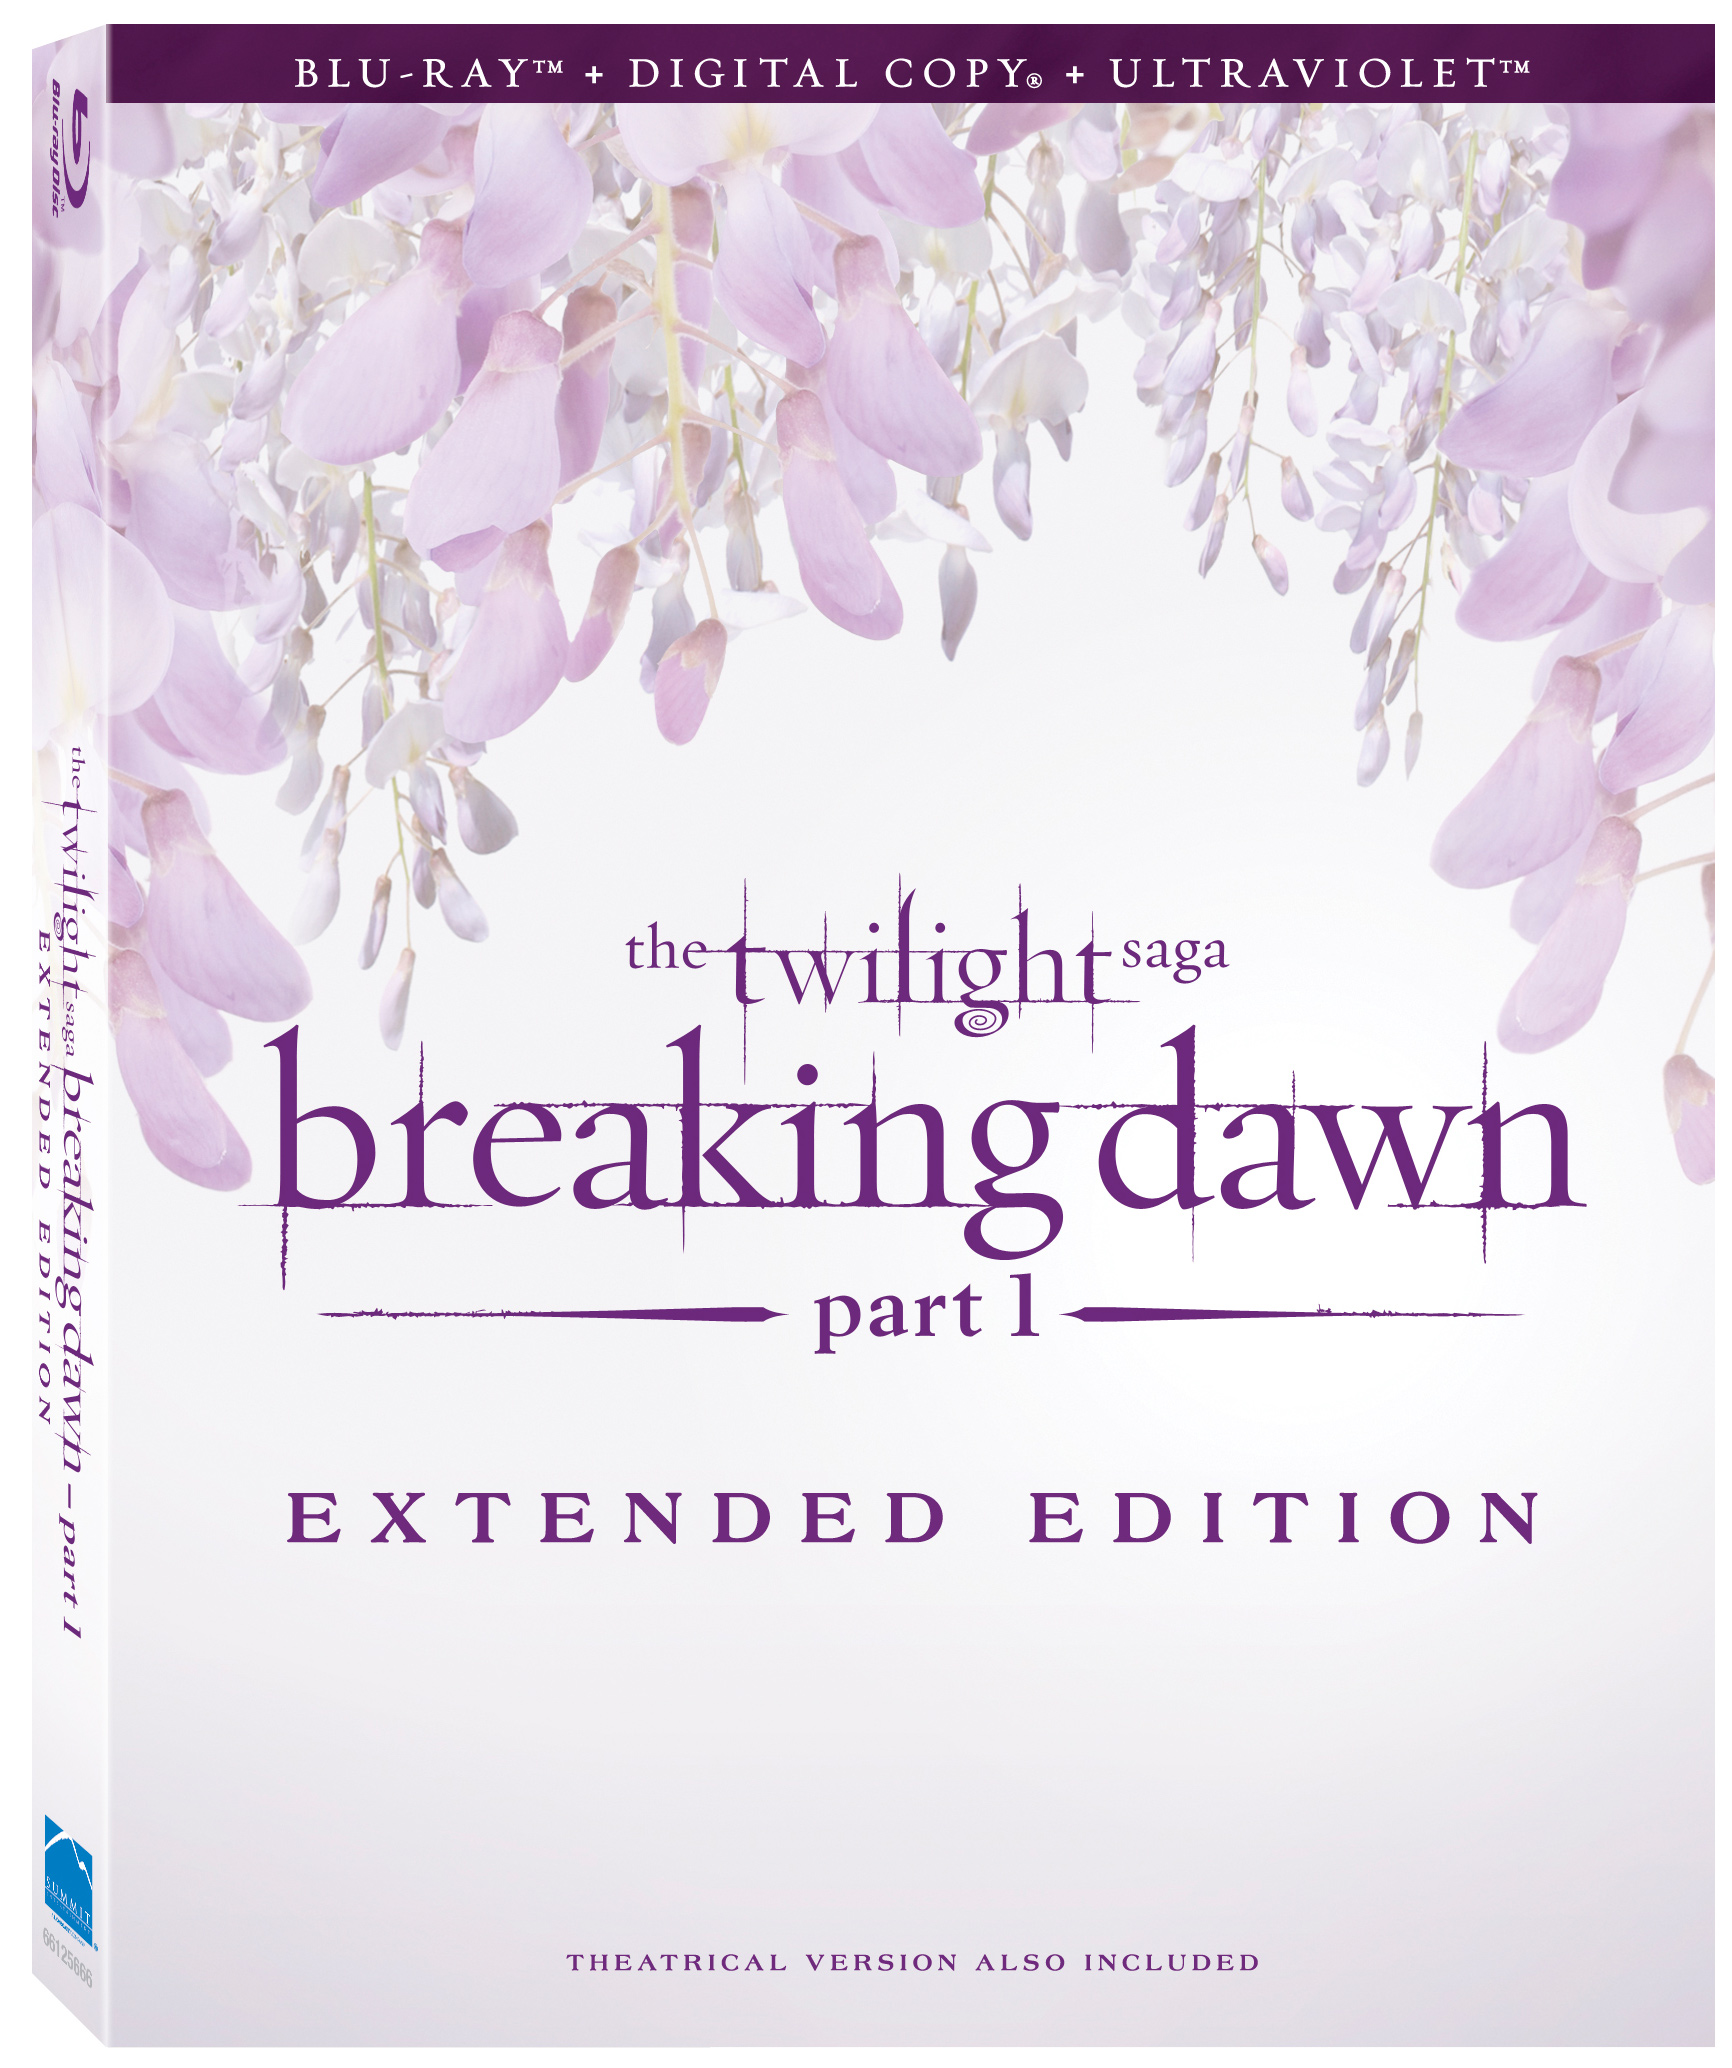 TwilightBreakingDawn Part1 Extended BD CoverArt Relive The Romance With The Twilight Saga: Breaking Dawn Part 1 Extended Edition